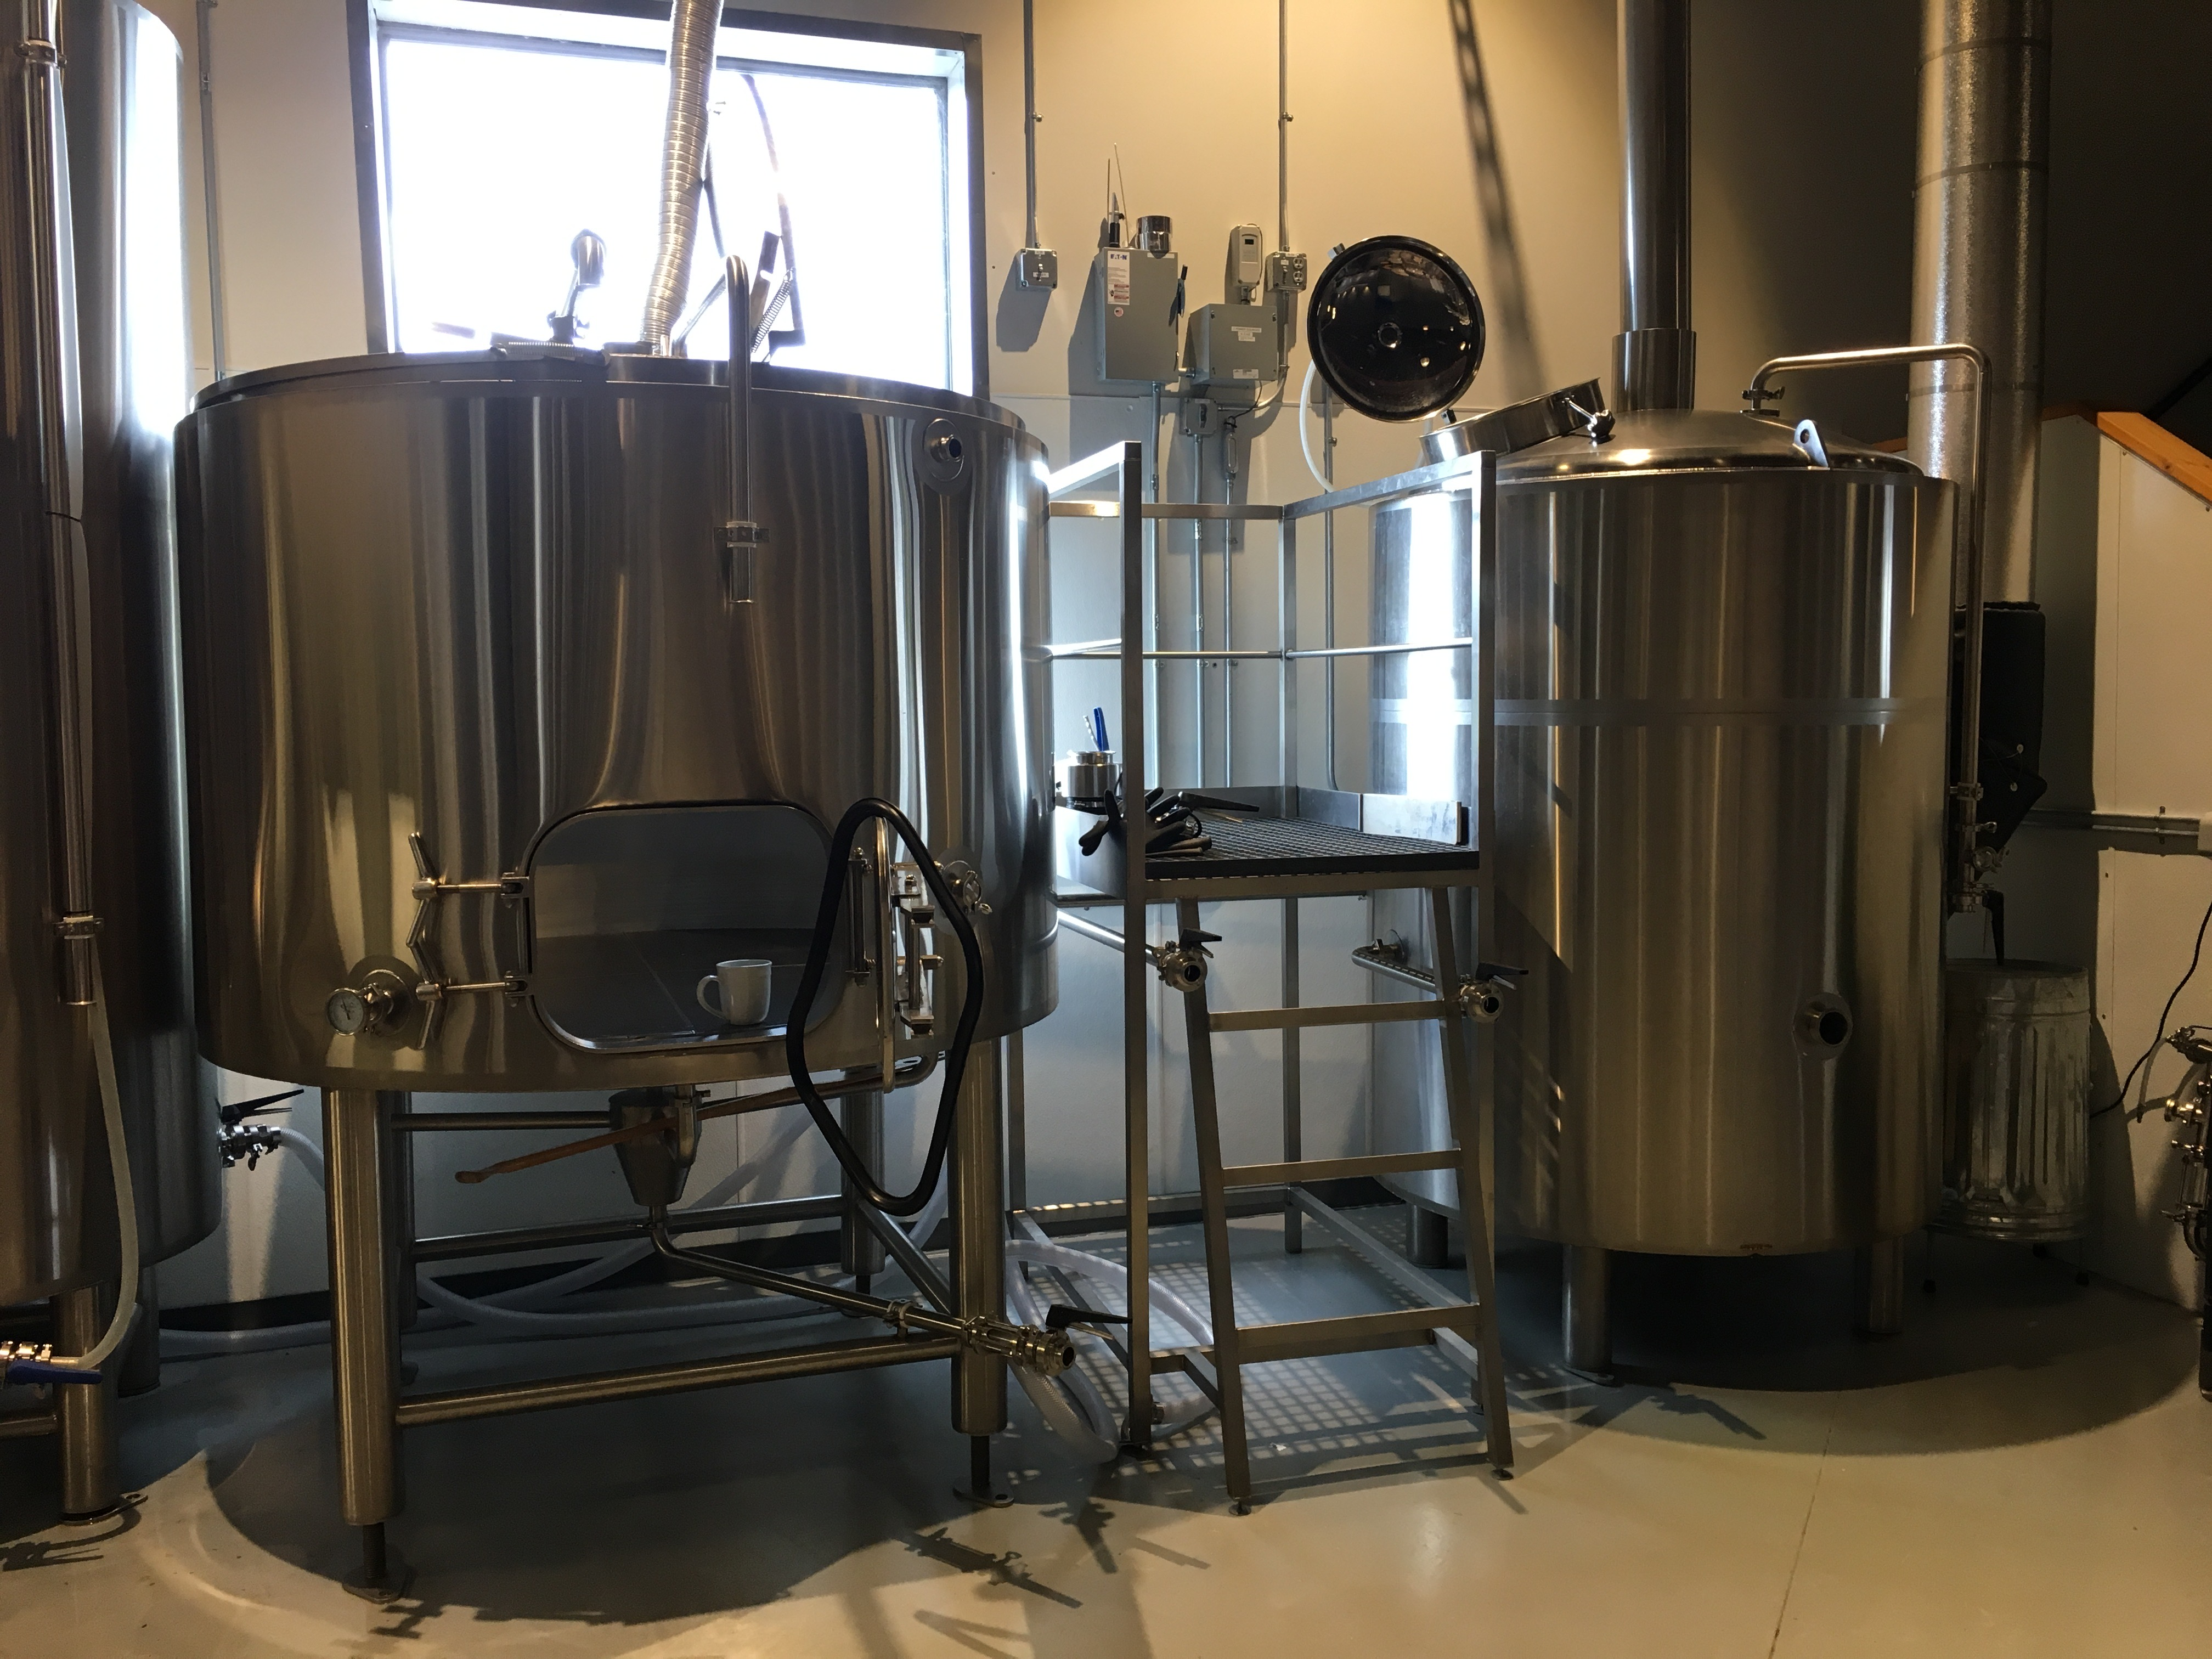 Brothers Cascadia Brewing Celebrate Its Grand Opening This